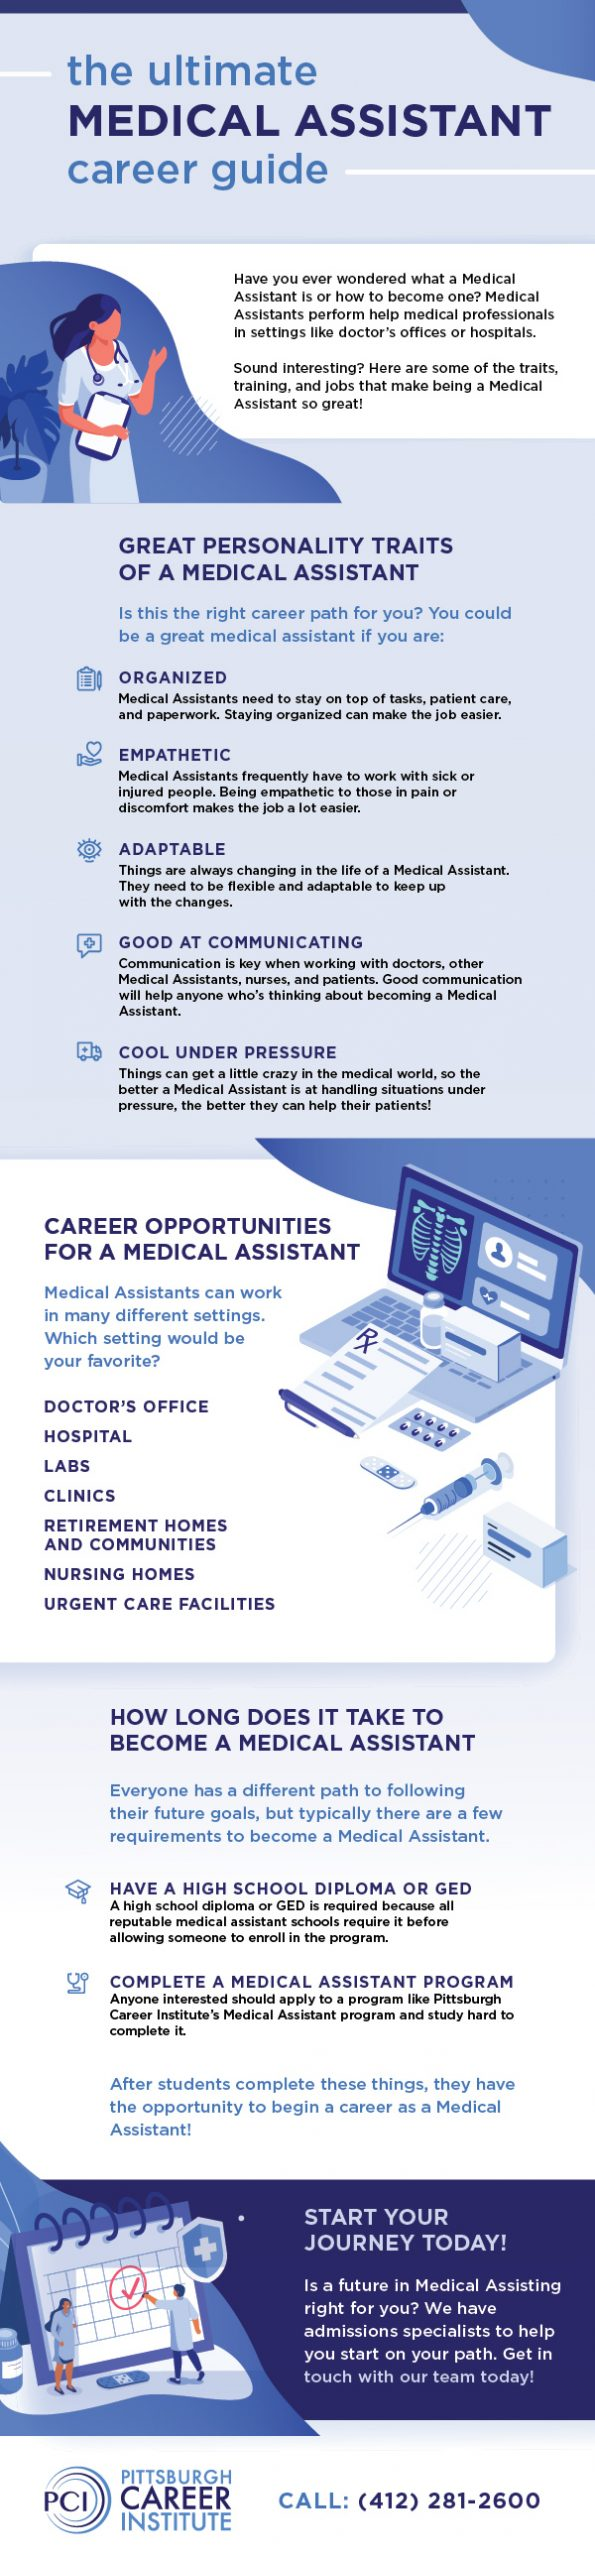 infographic about the medical assistant blog